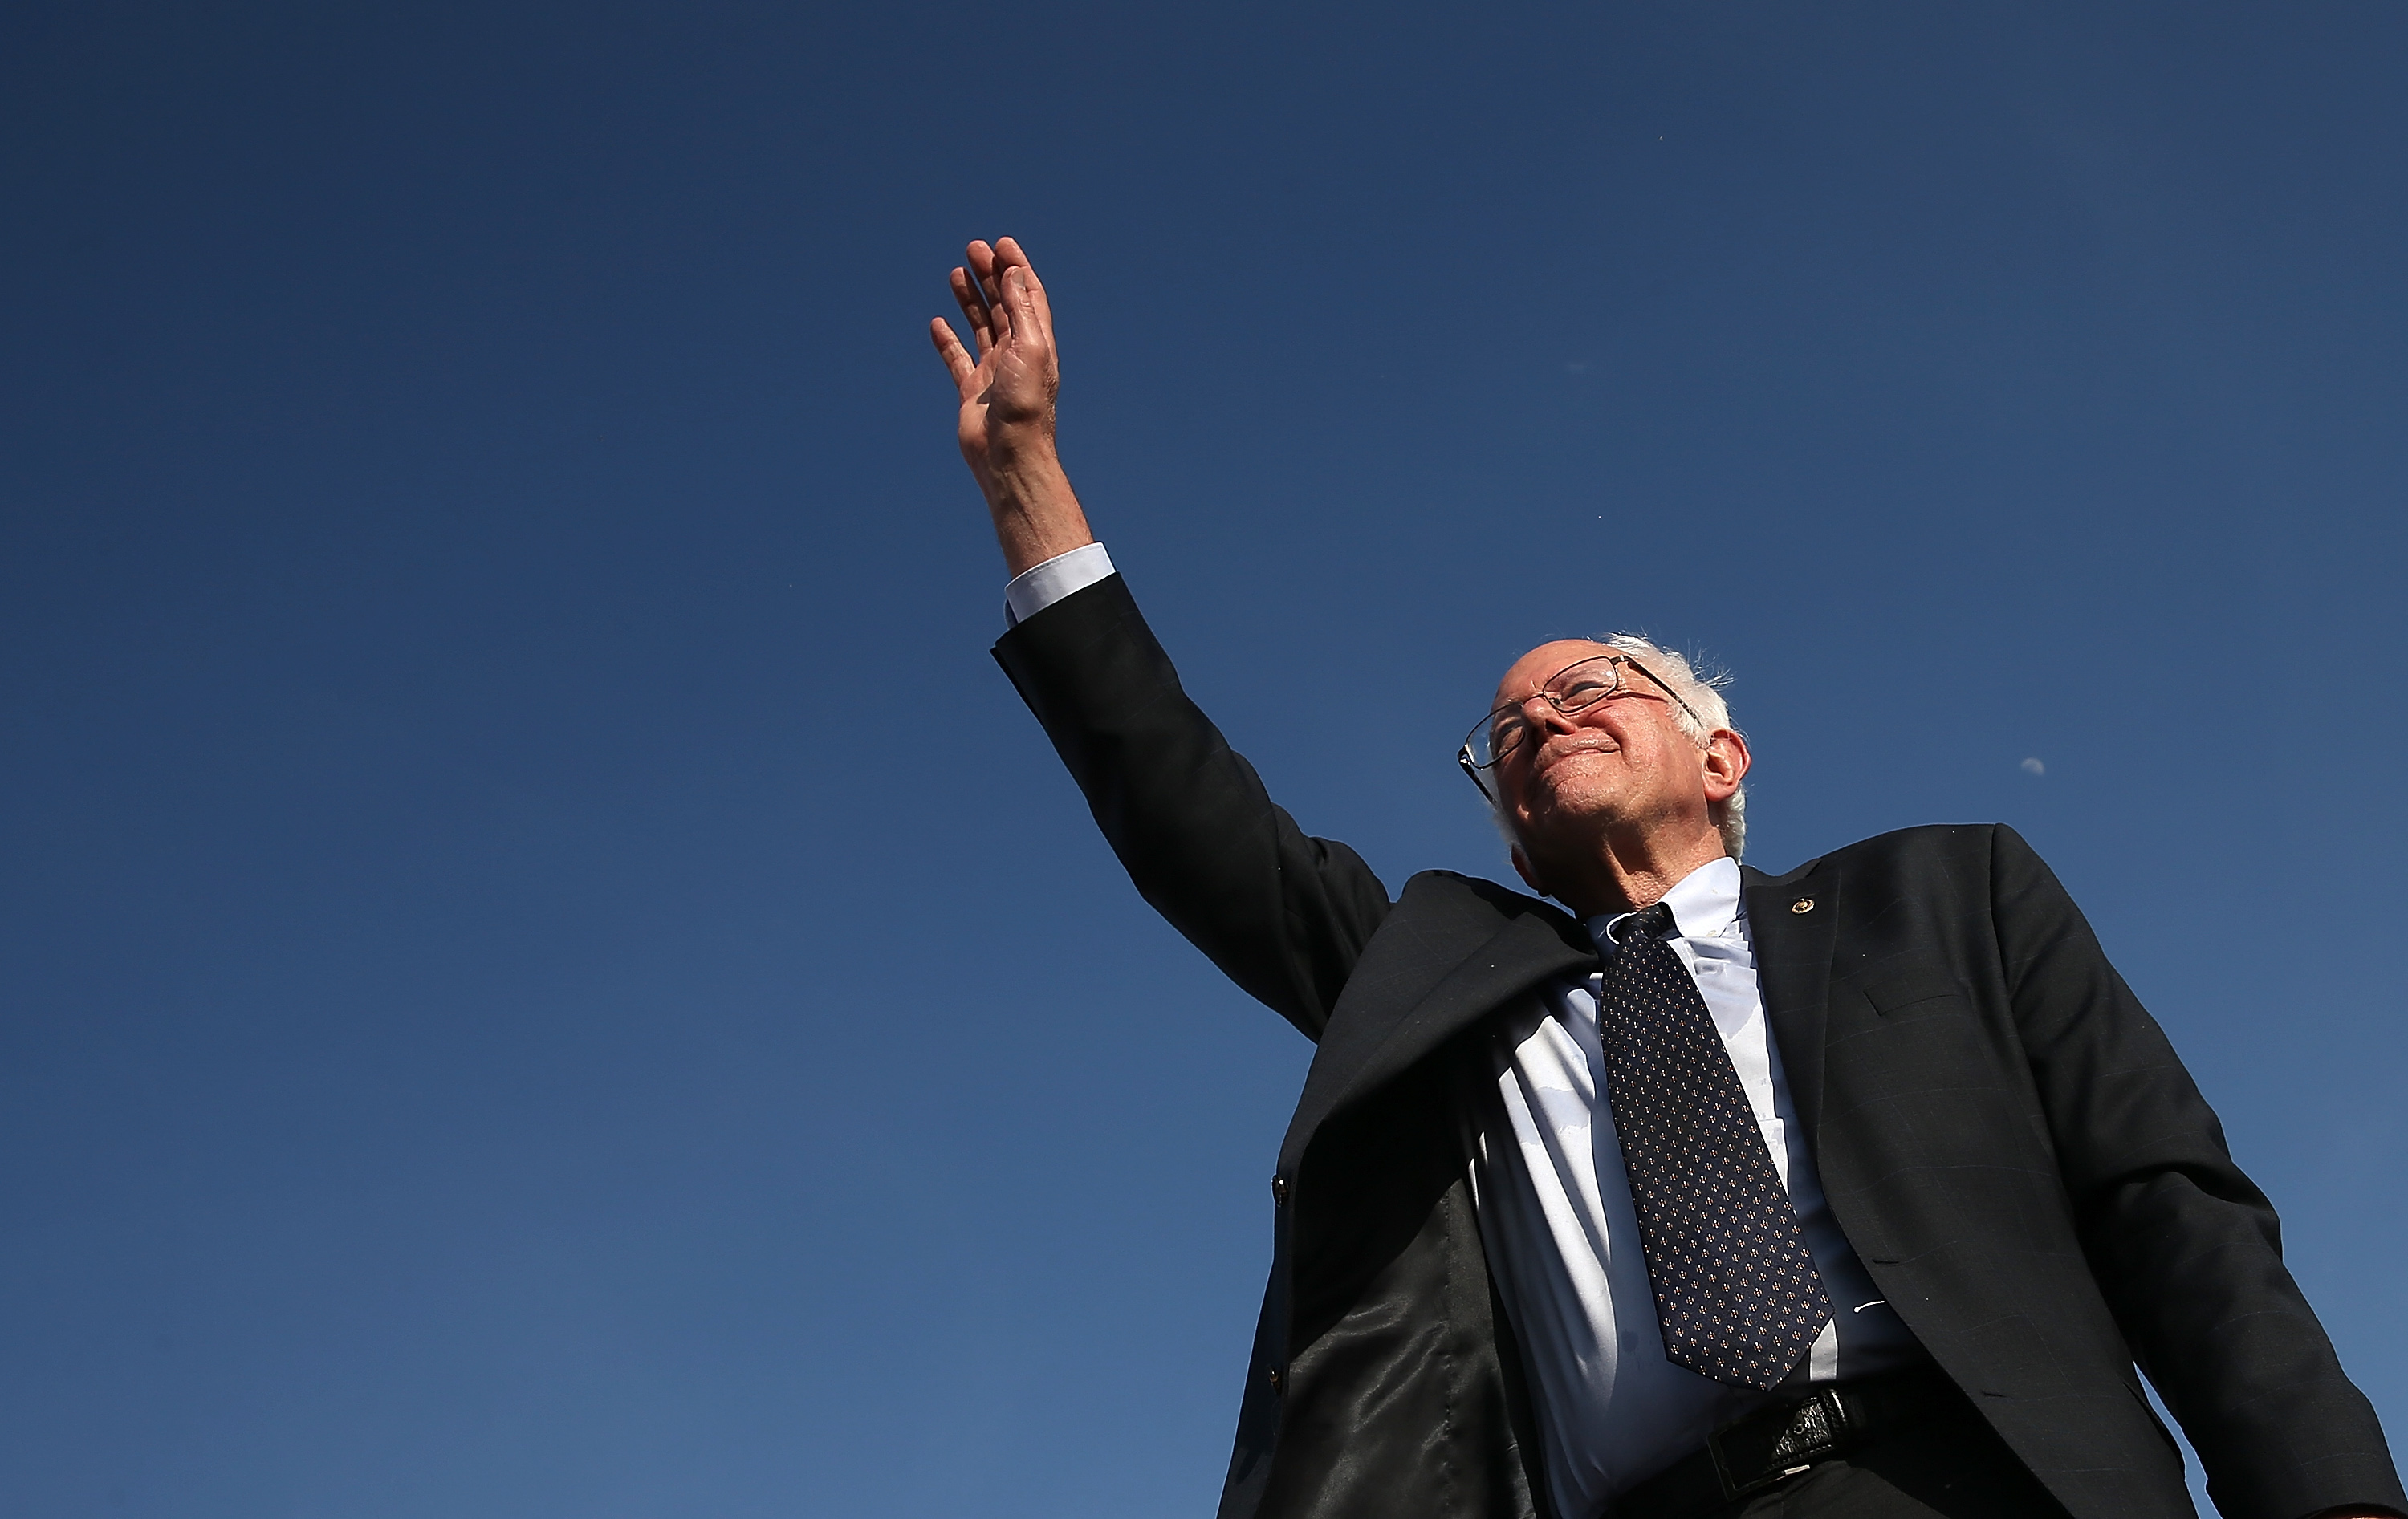 Bernie Sanders waves.